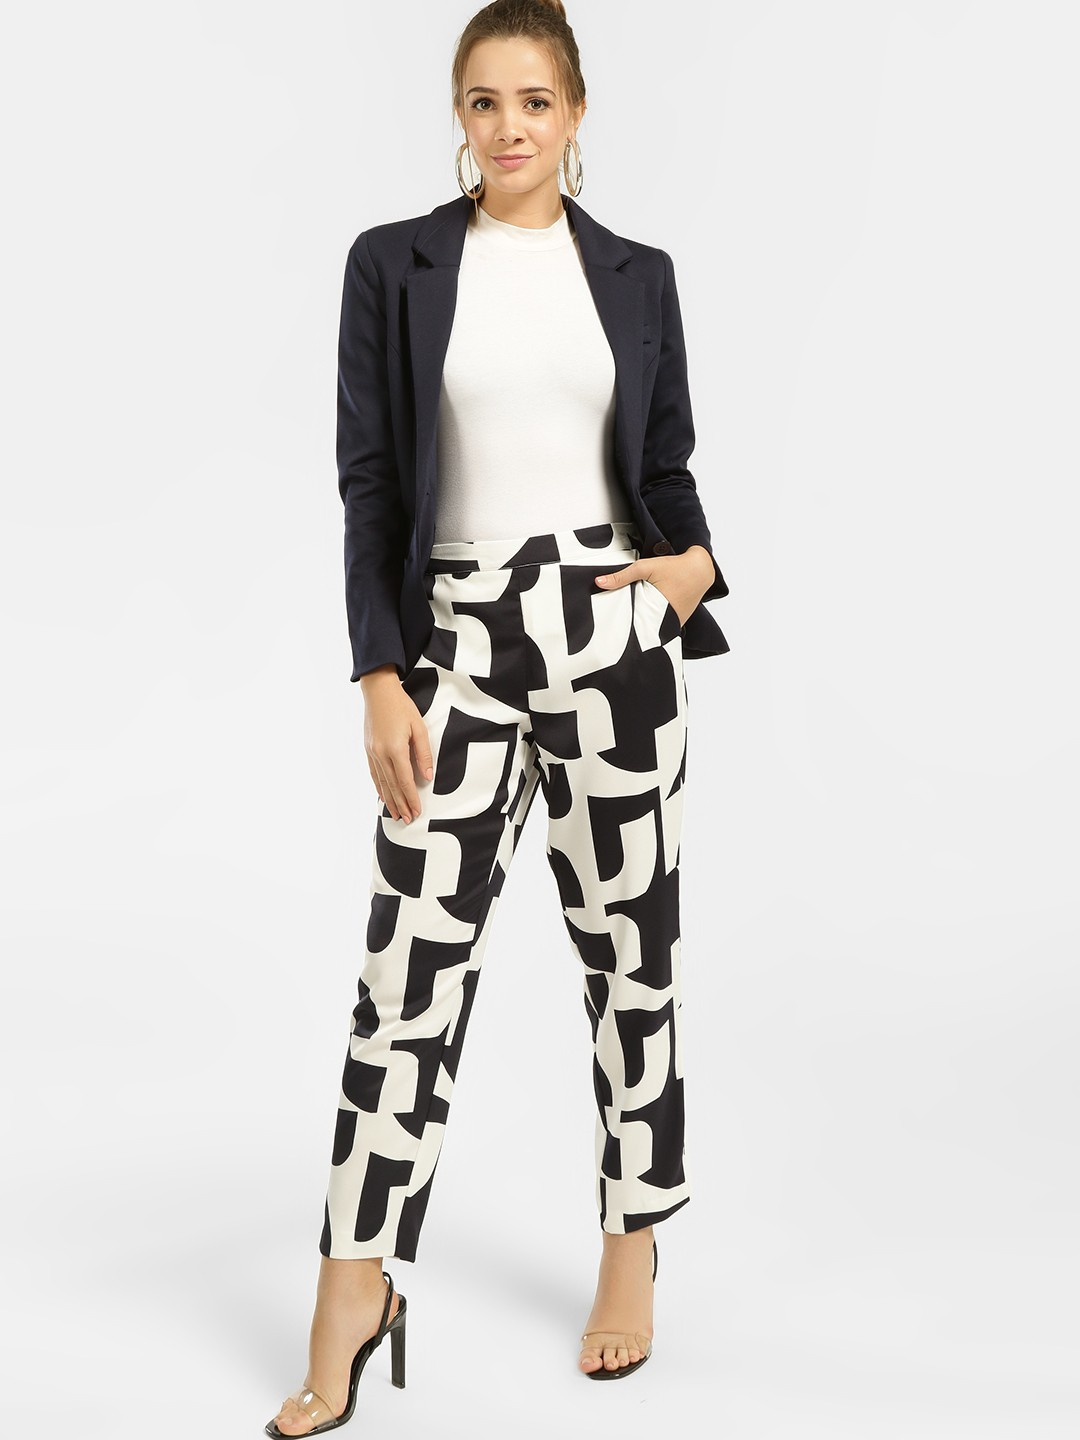 Vero Moda Multi Abstract Print Trousers 1